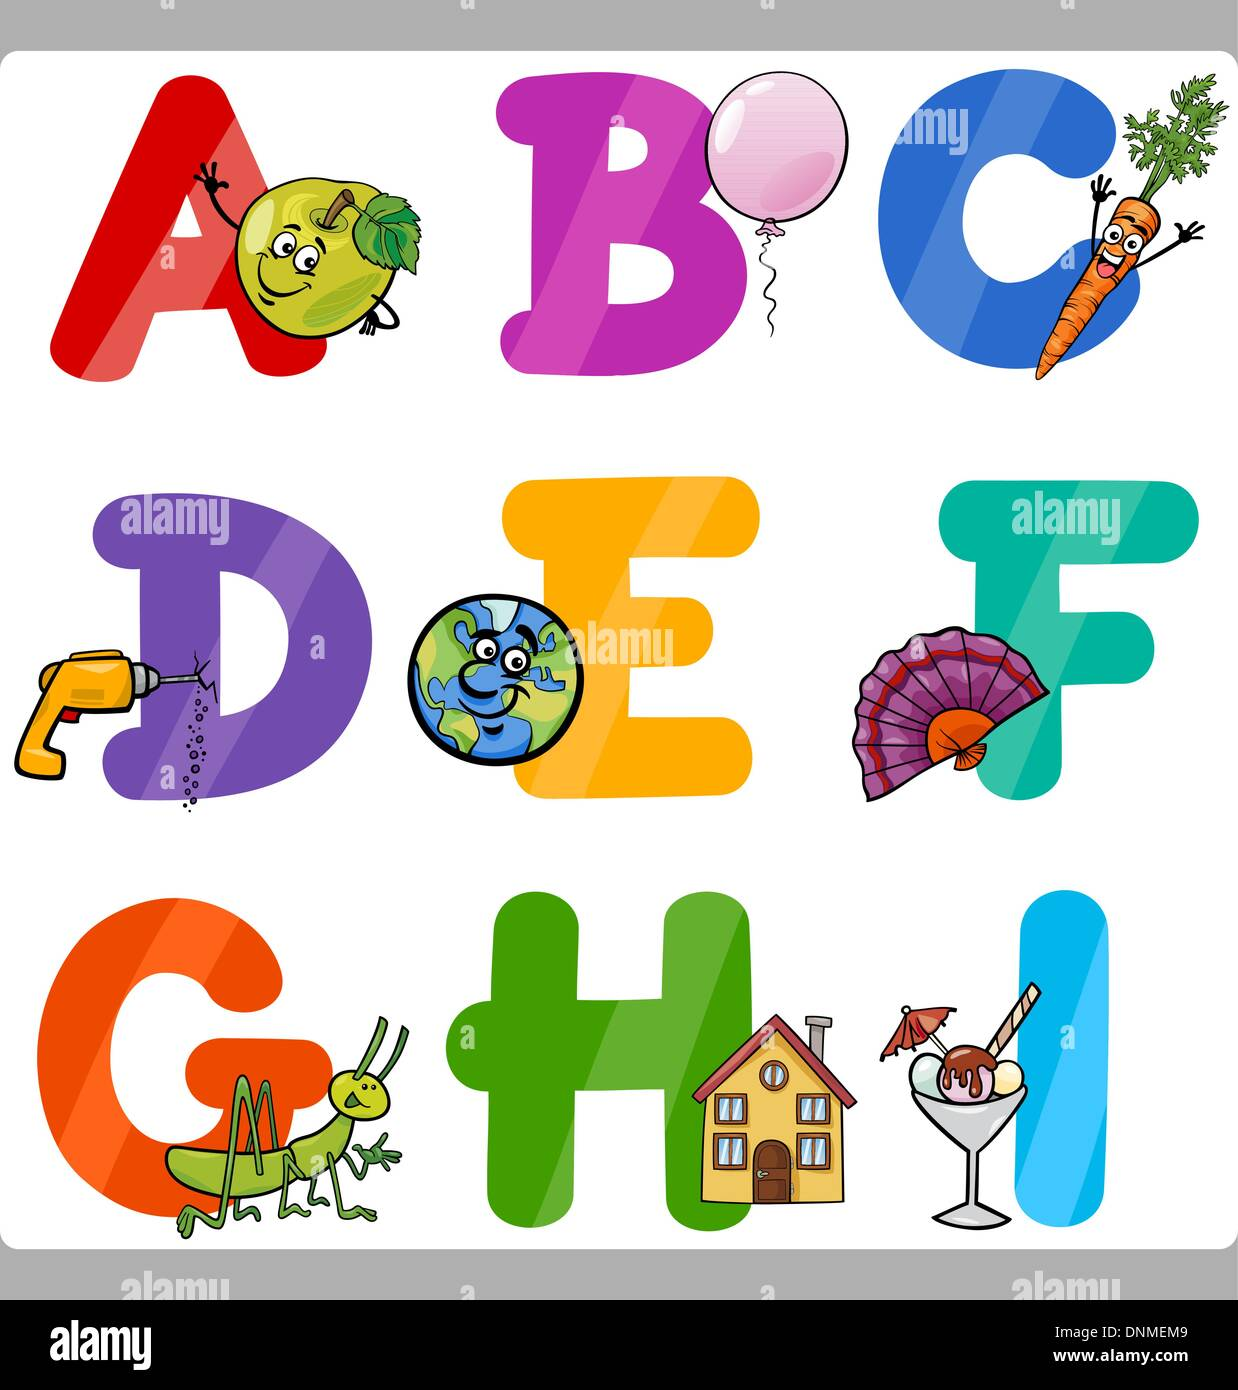 Cartoon Illustration Of Funny Capital Letters Alphabet With Objects For Language And Vocabulary Education Children From A To